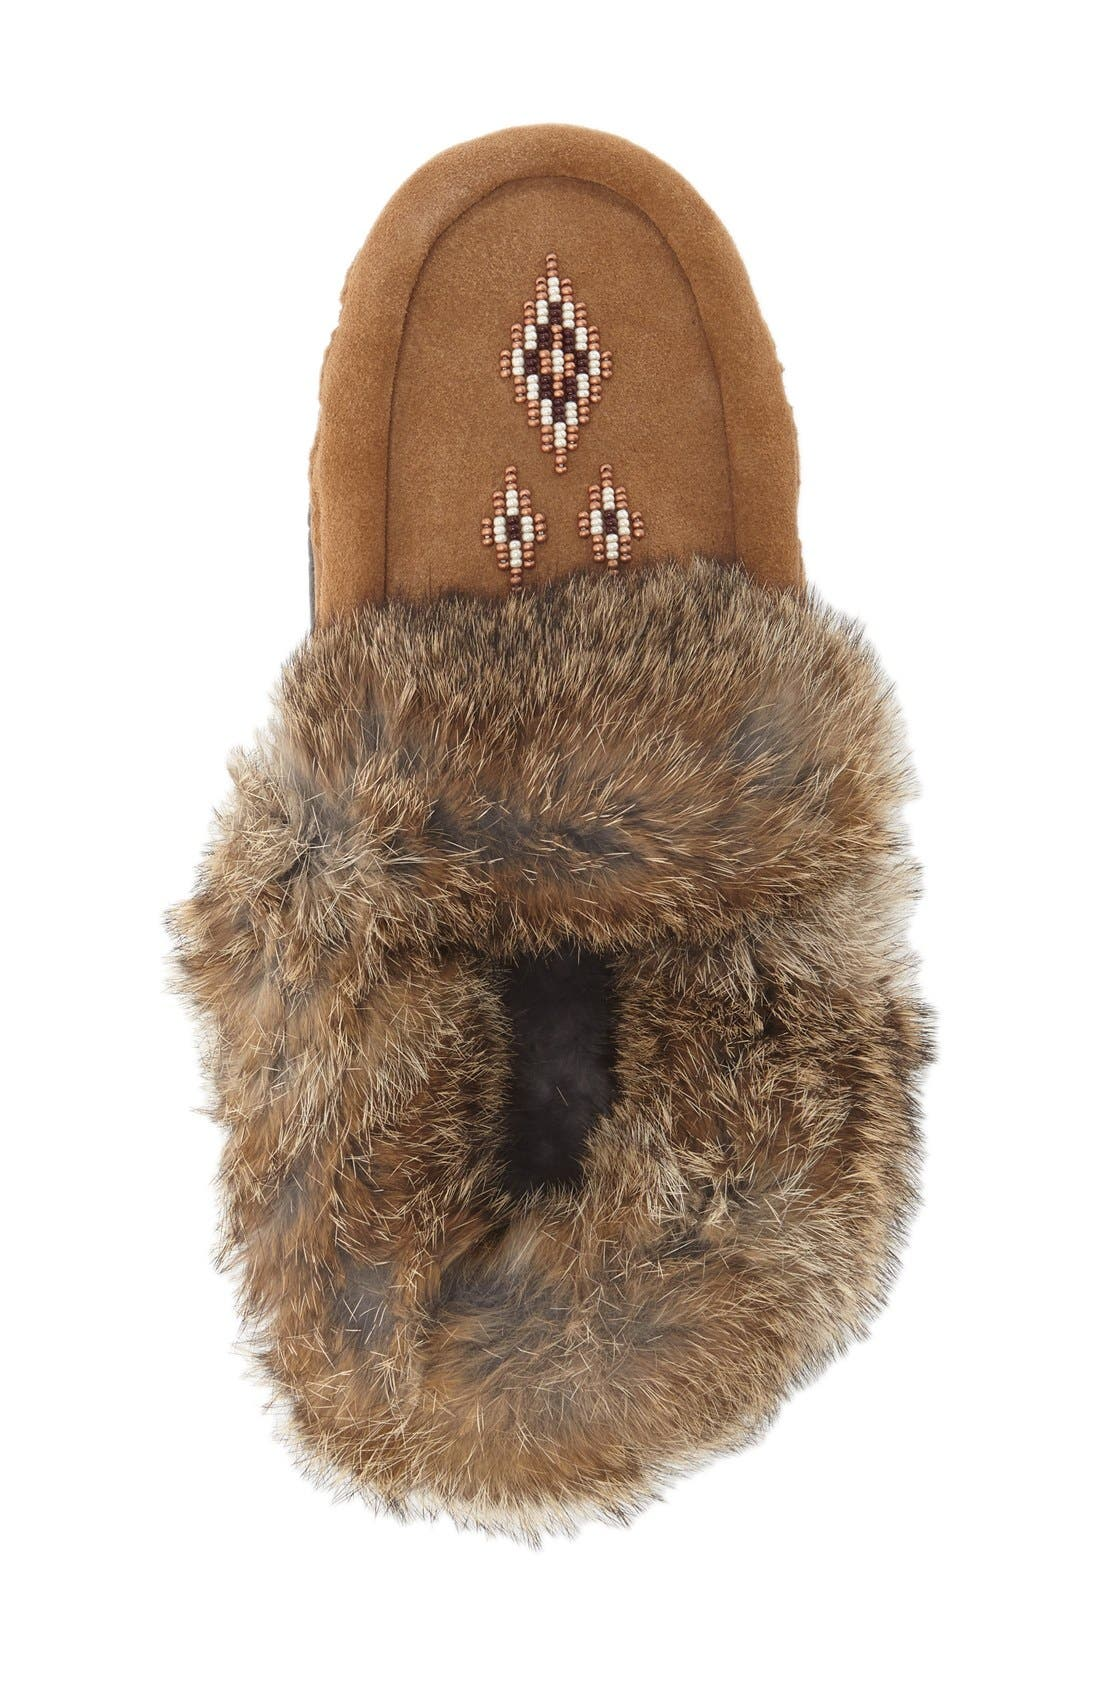 Genuine Shearling and Rabbit Fur Mukluk Slipper,                             Alternate thumbnail 4, color,                             OAK RABBIT FUR SUEDE